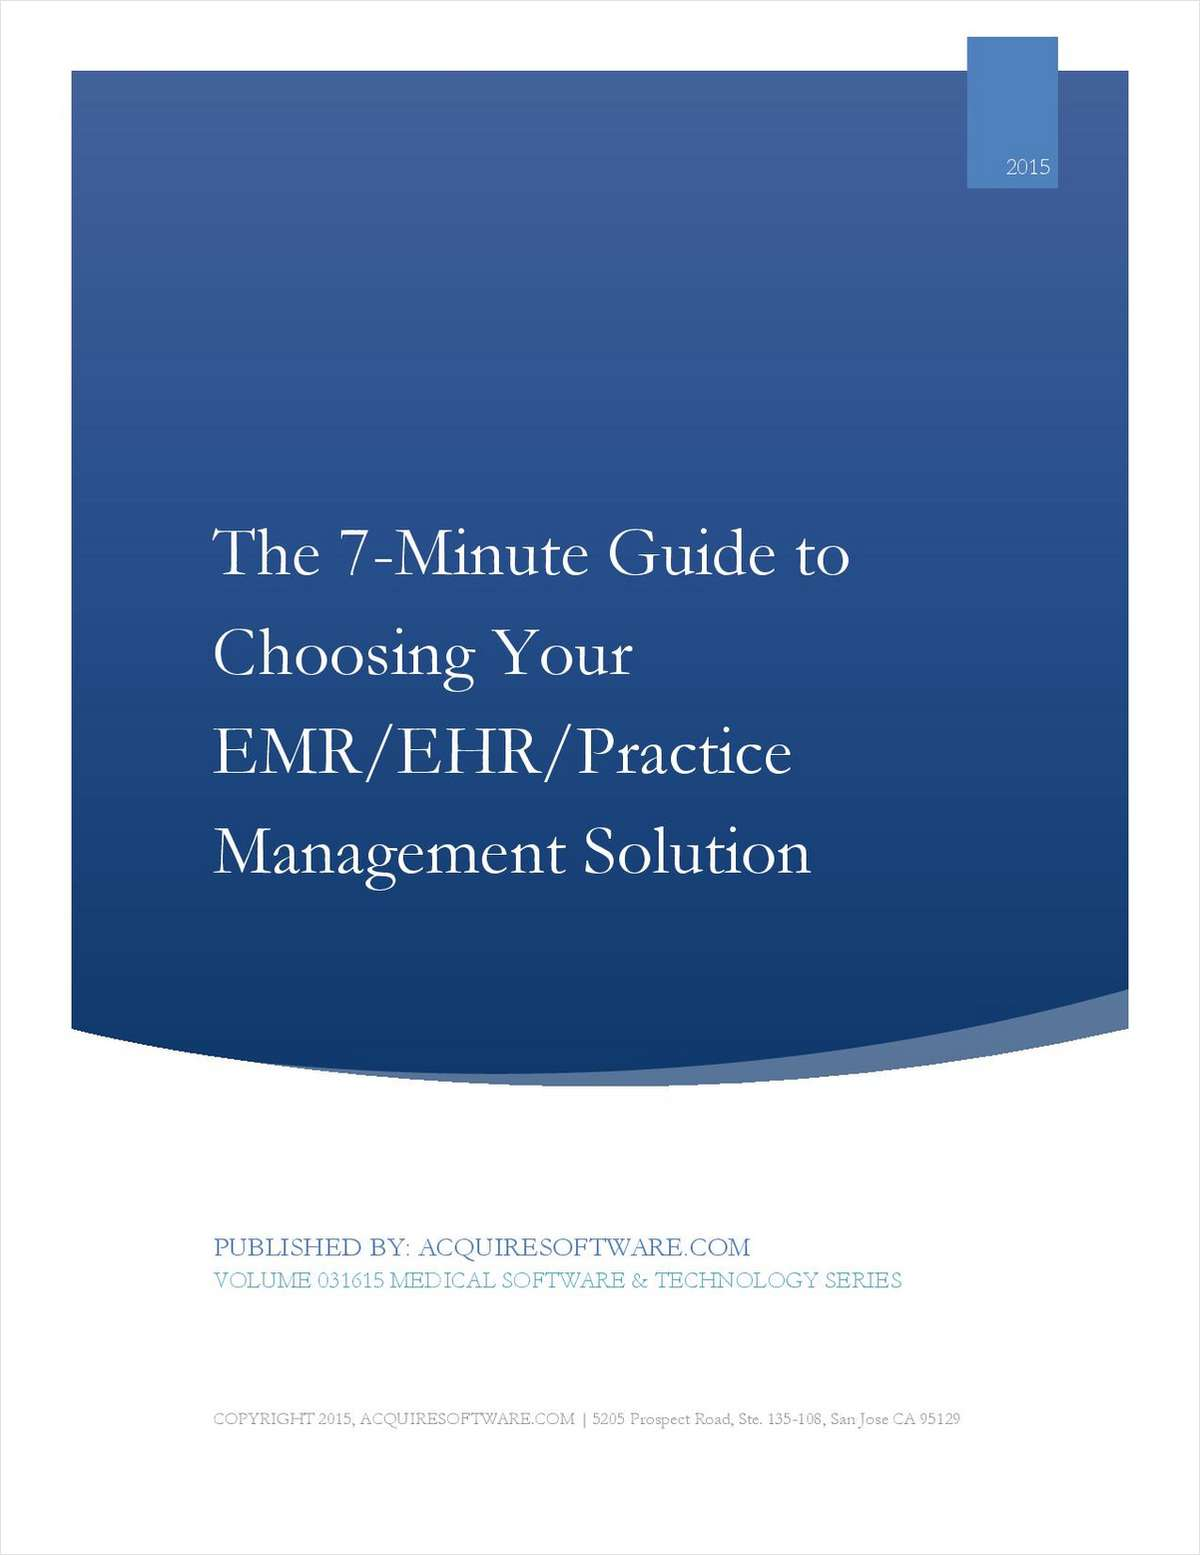 7-Minute Buyer's Guide: Selecting the Right EHR (Electronic Health Records) and  Practice Management (PM) Solution for Your Practice